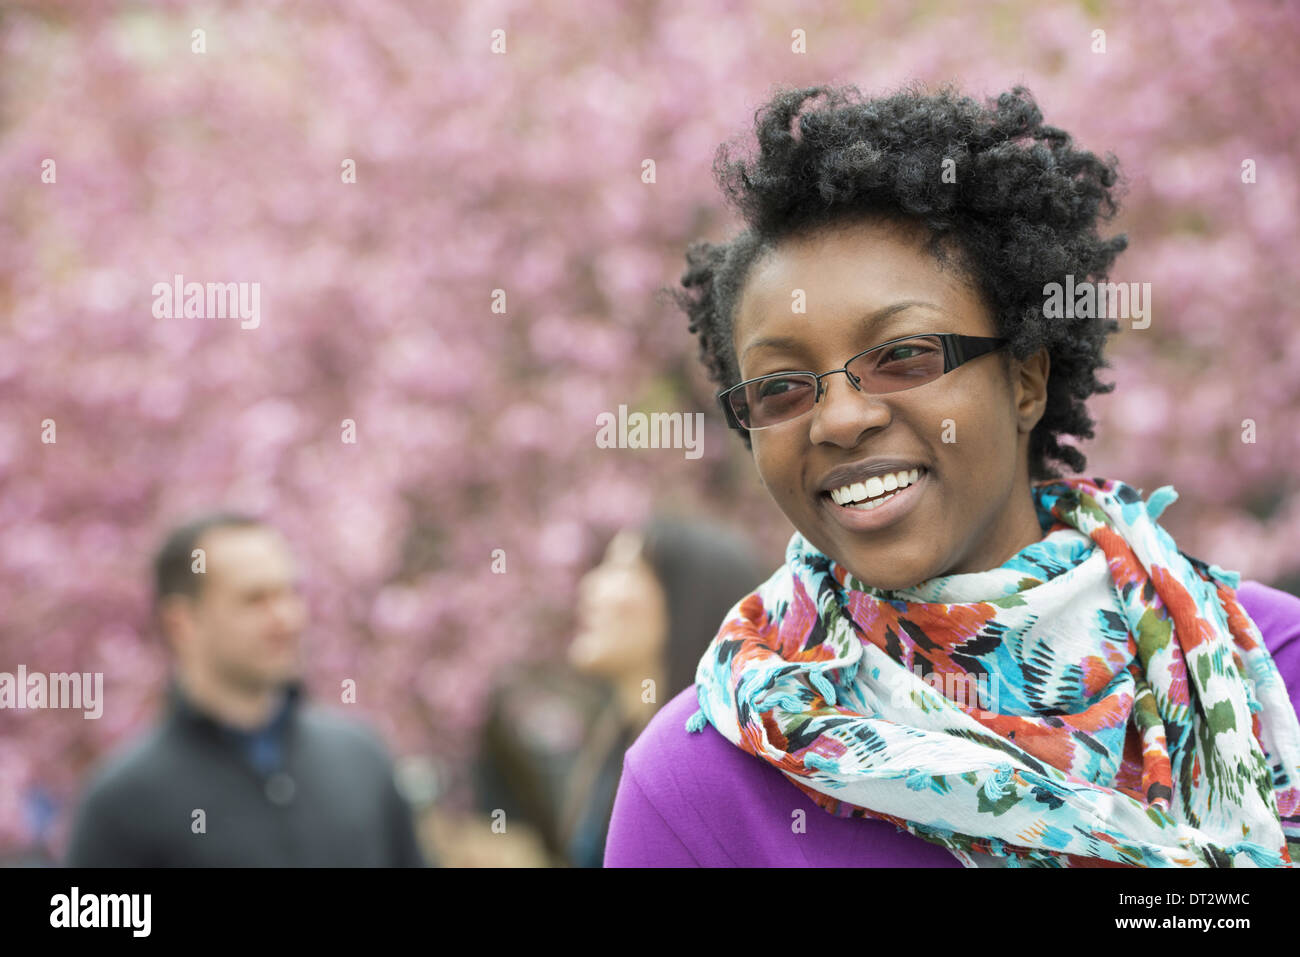 A group of people under the cherry blossom trees in the park A young woman smiling wearing a purple shirt and floral scarf - Stock Image